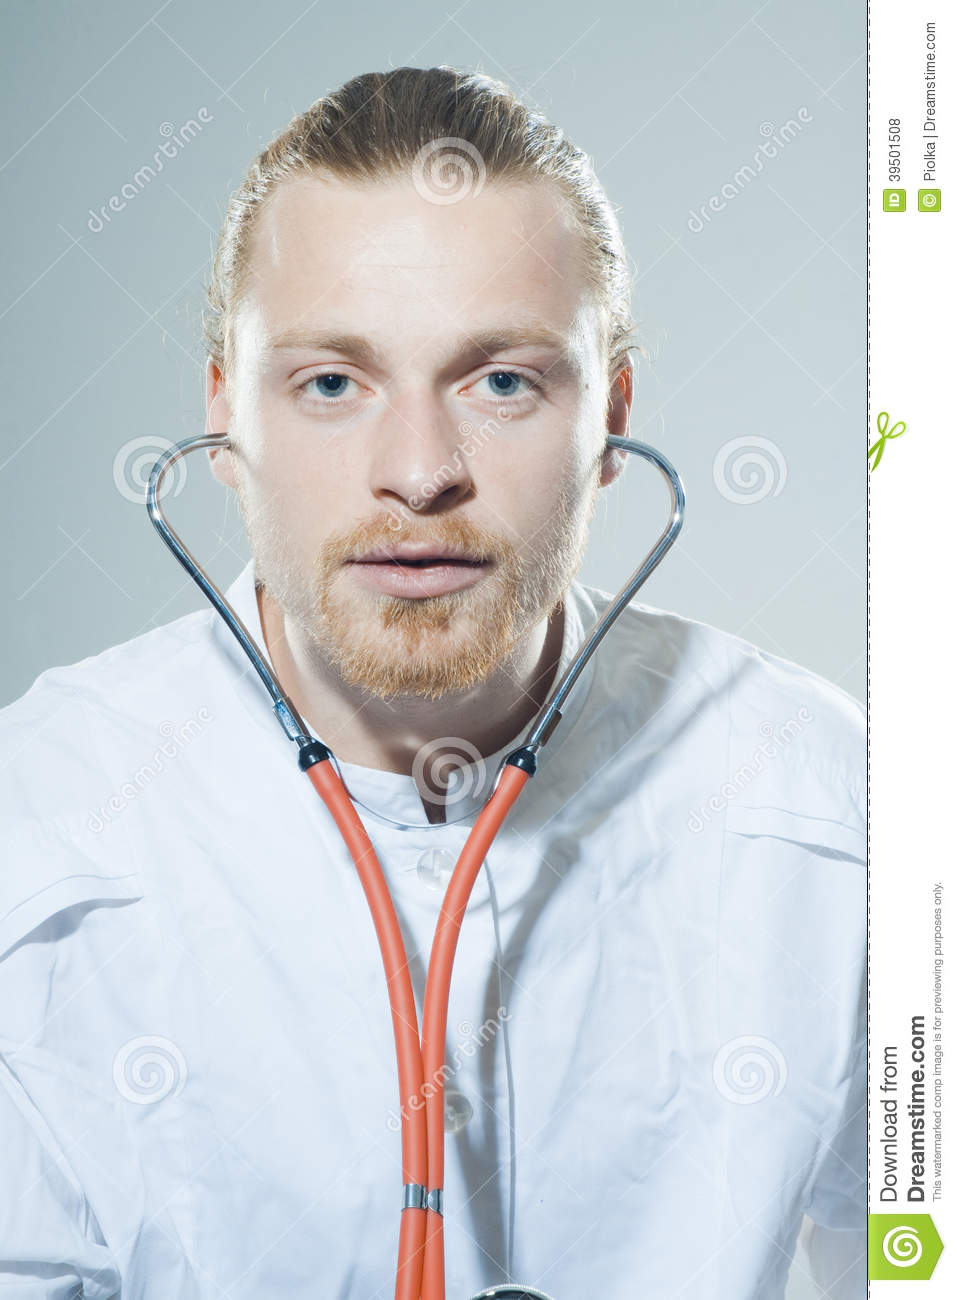 Young man with stethoscope